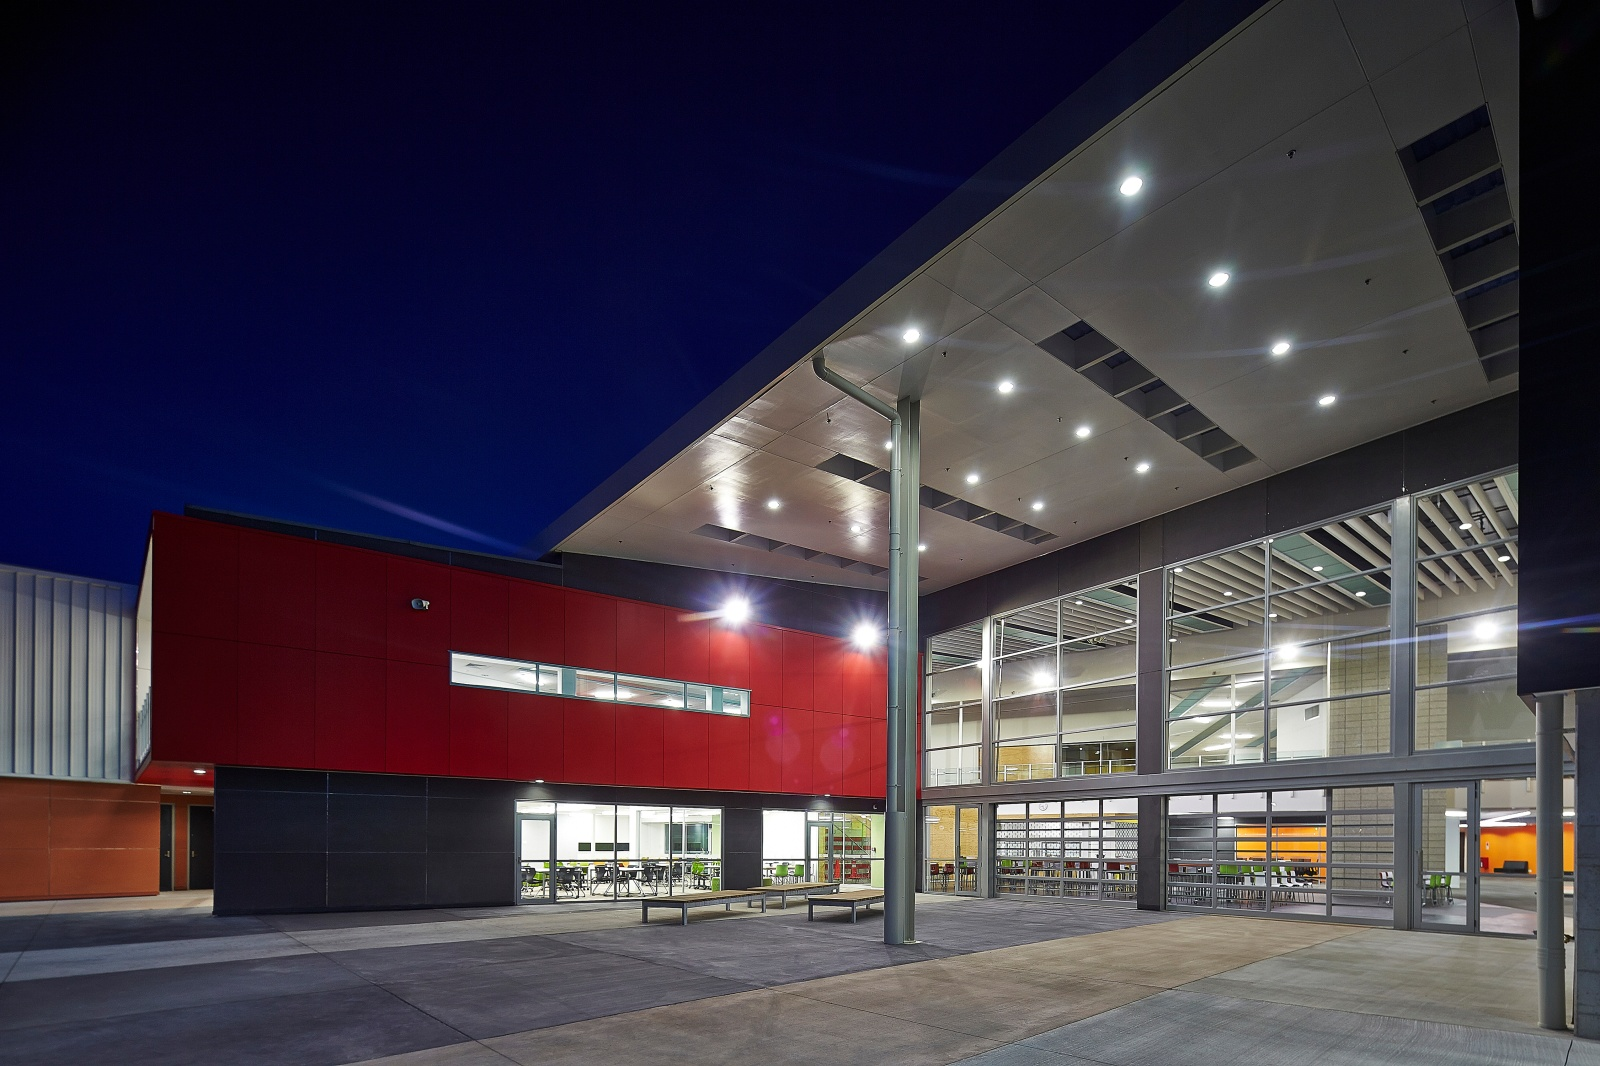 Hobsonville Point Secondary School - HiRes 29_web.jpg